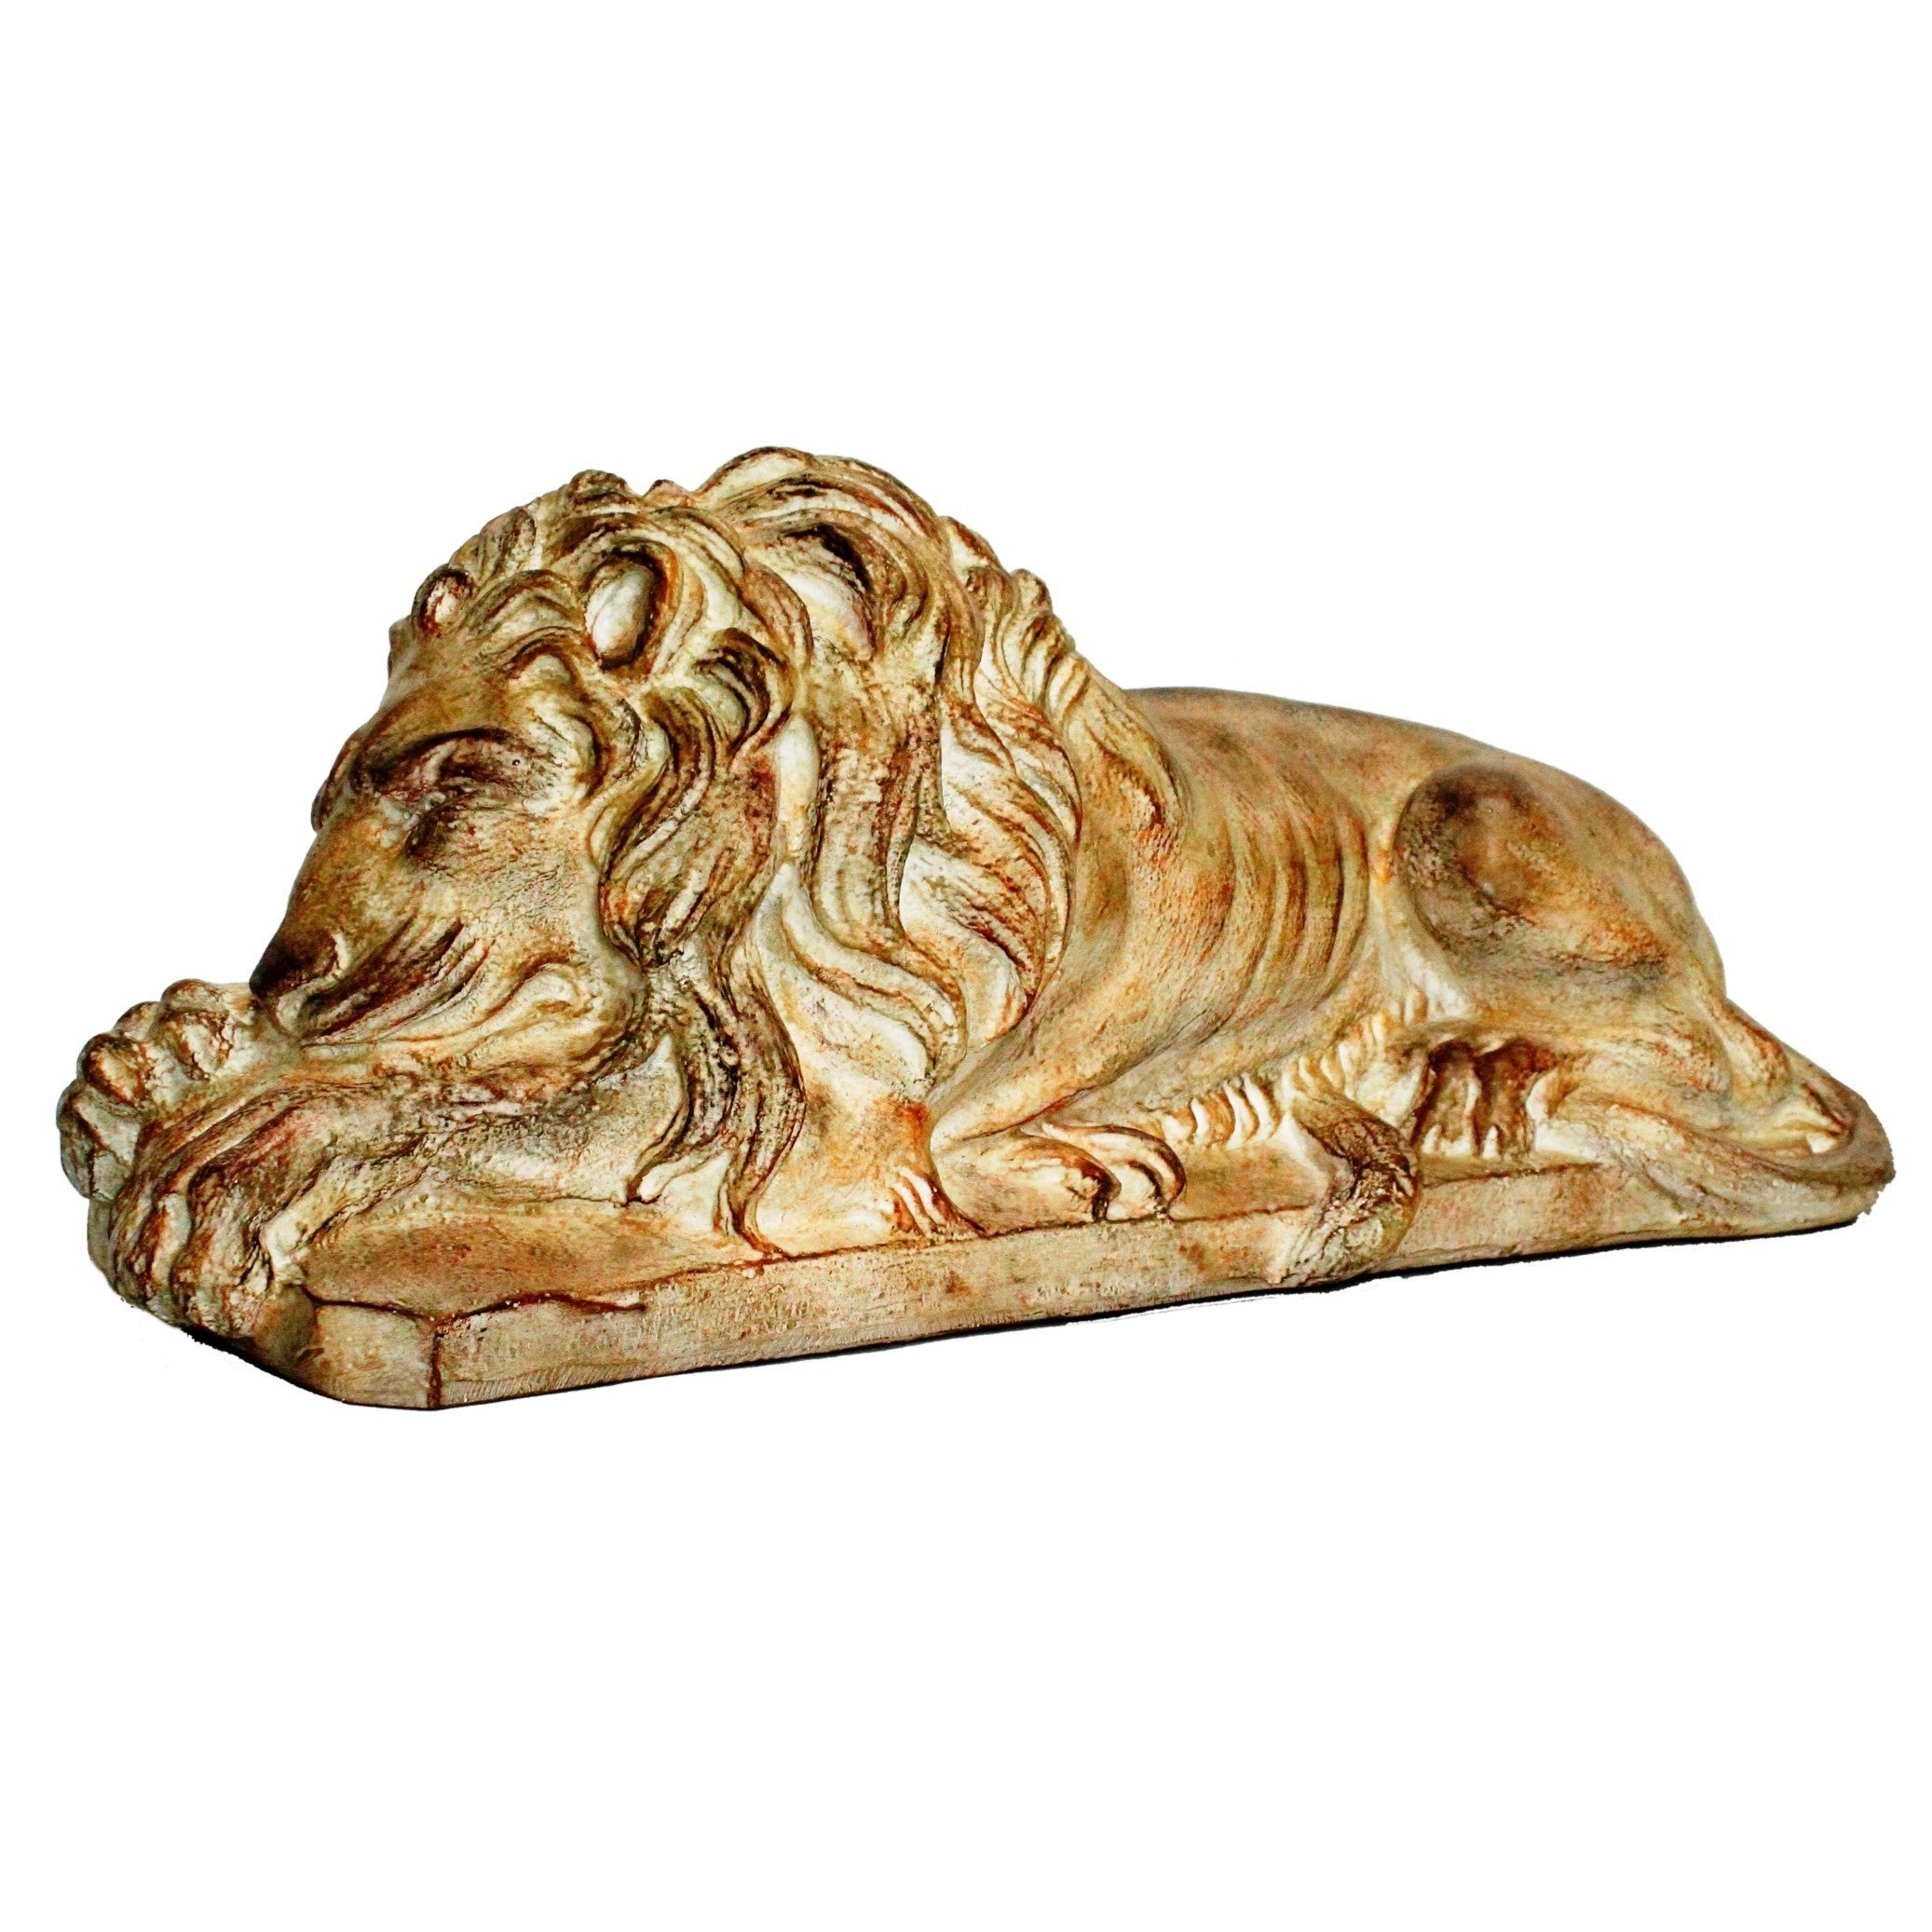 31-inch Brown Laying Lion Statue (Resin), Outdoor Décor